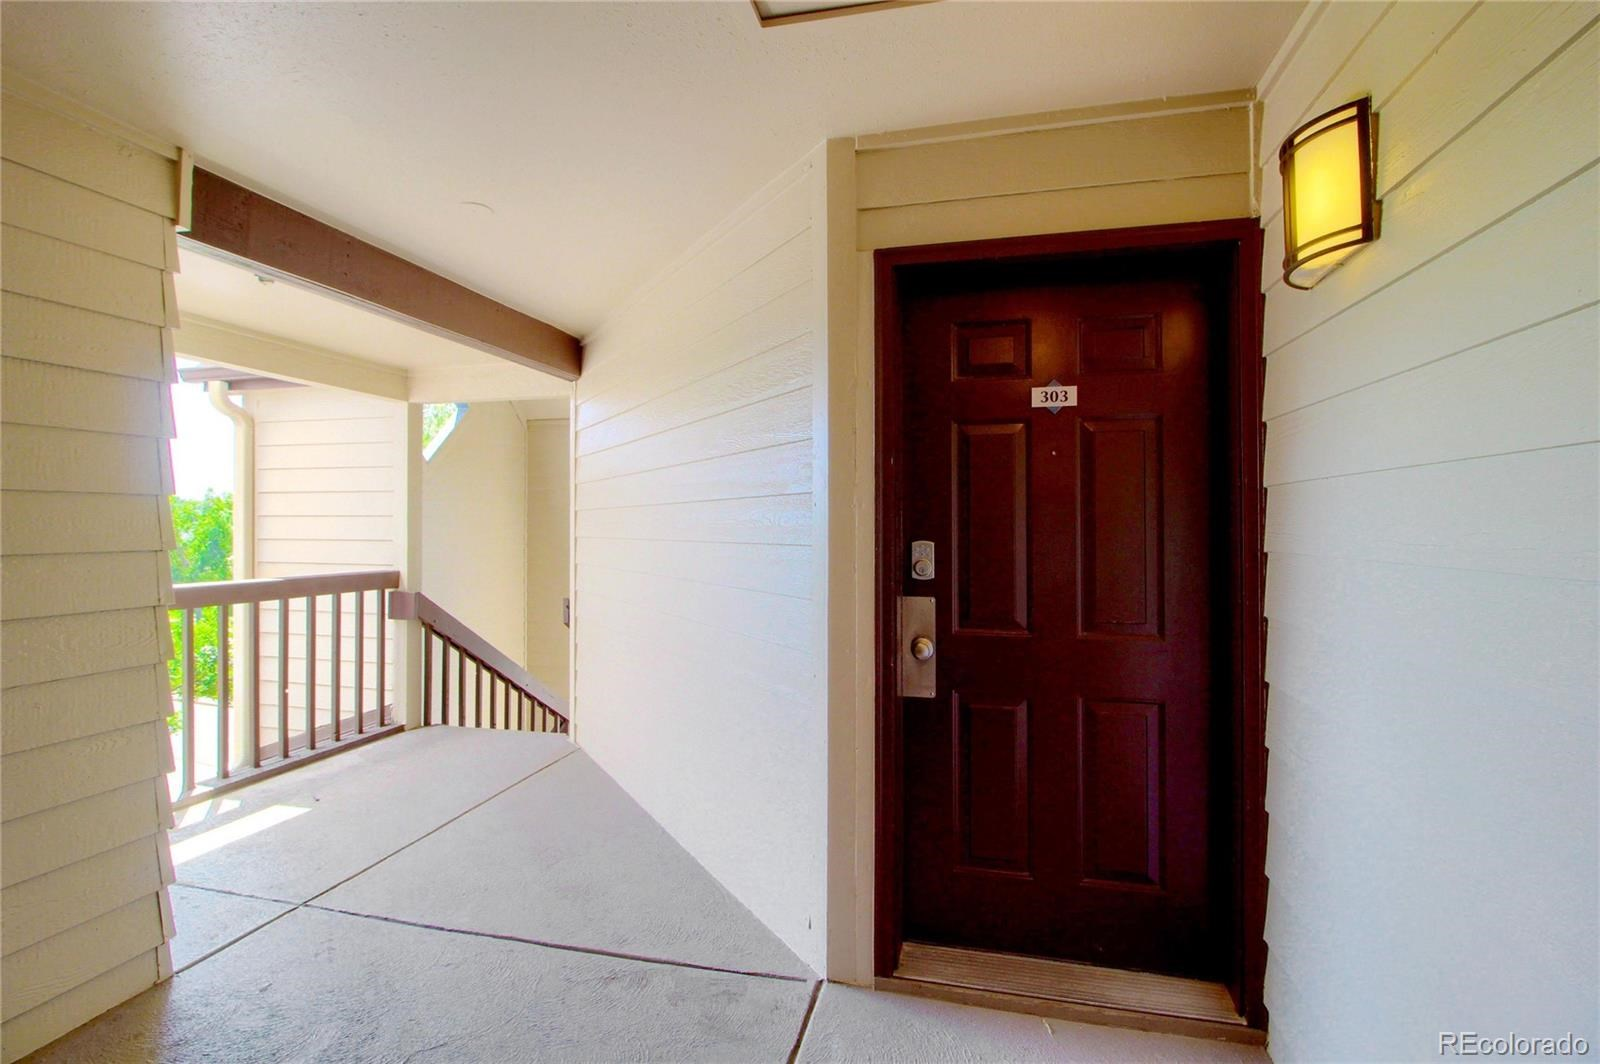 MLS# 5763768 - 2 - 6380 S Boston Street #303, Greenwood Village, CO 80111